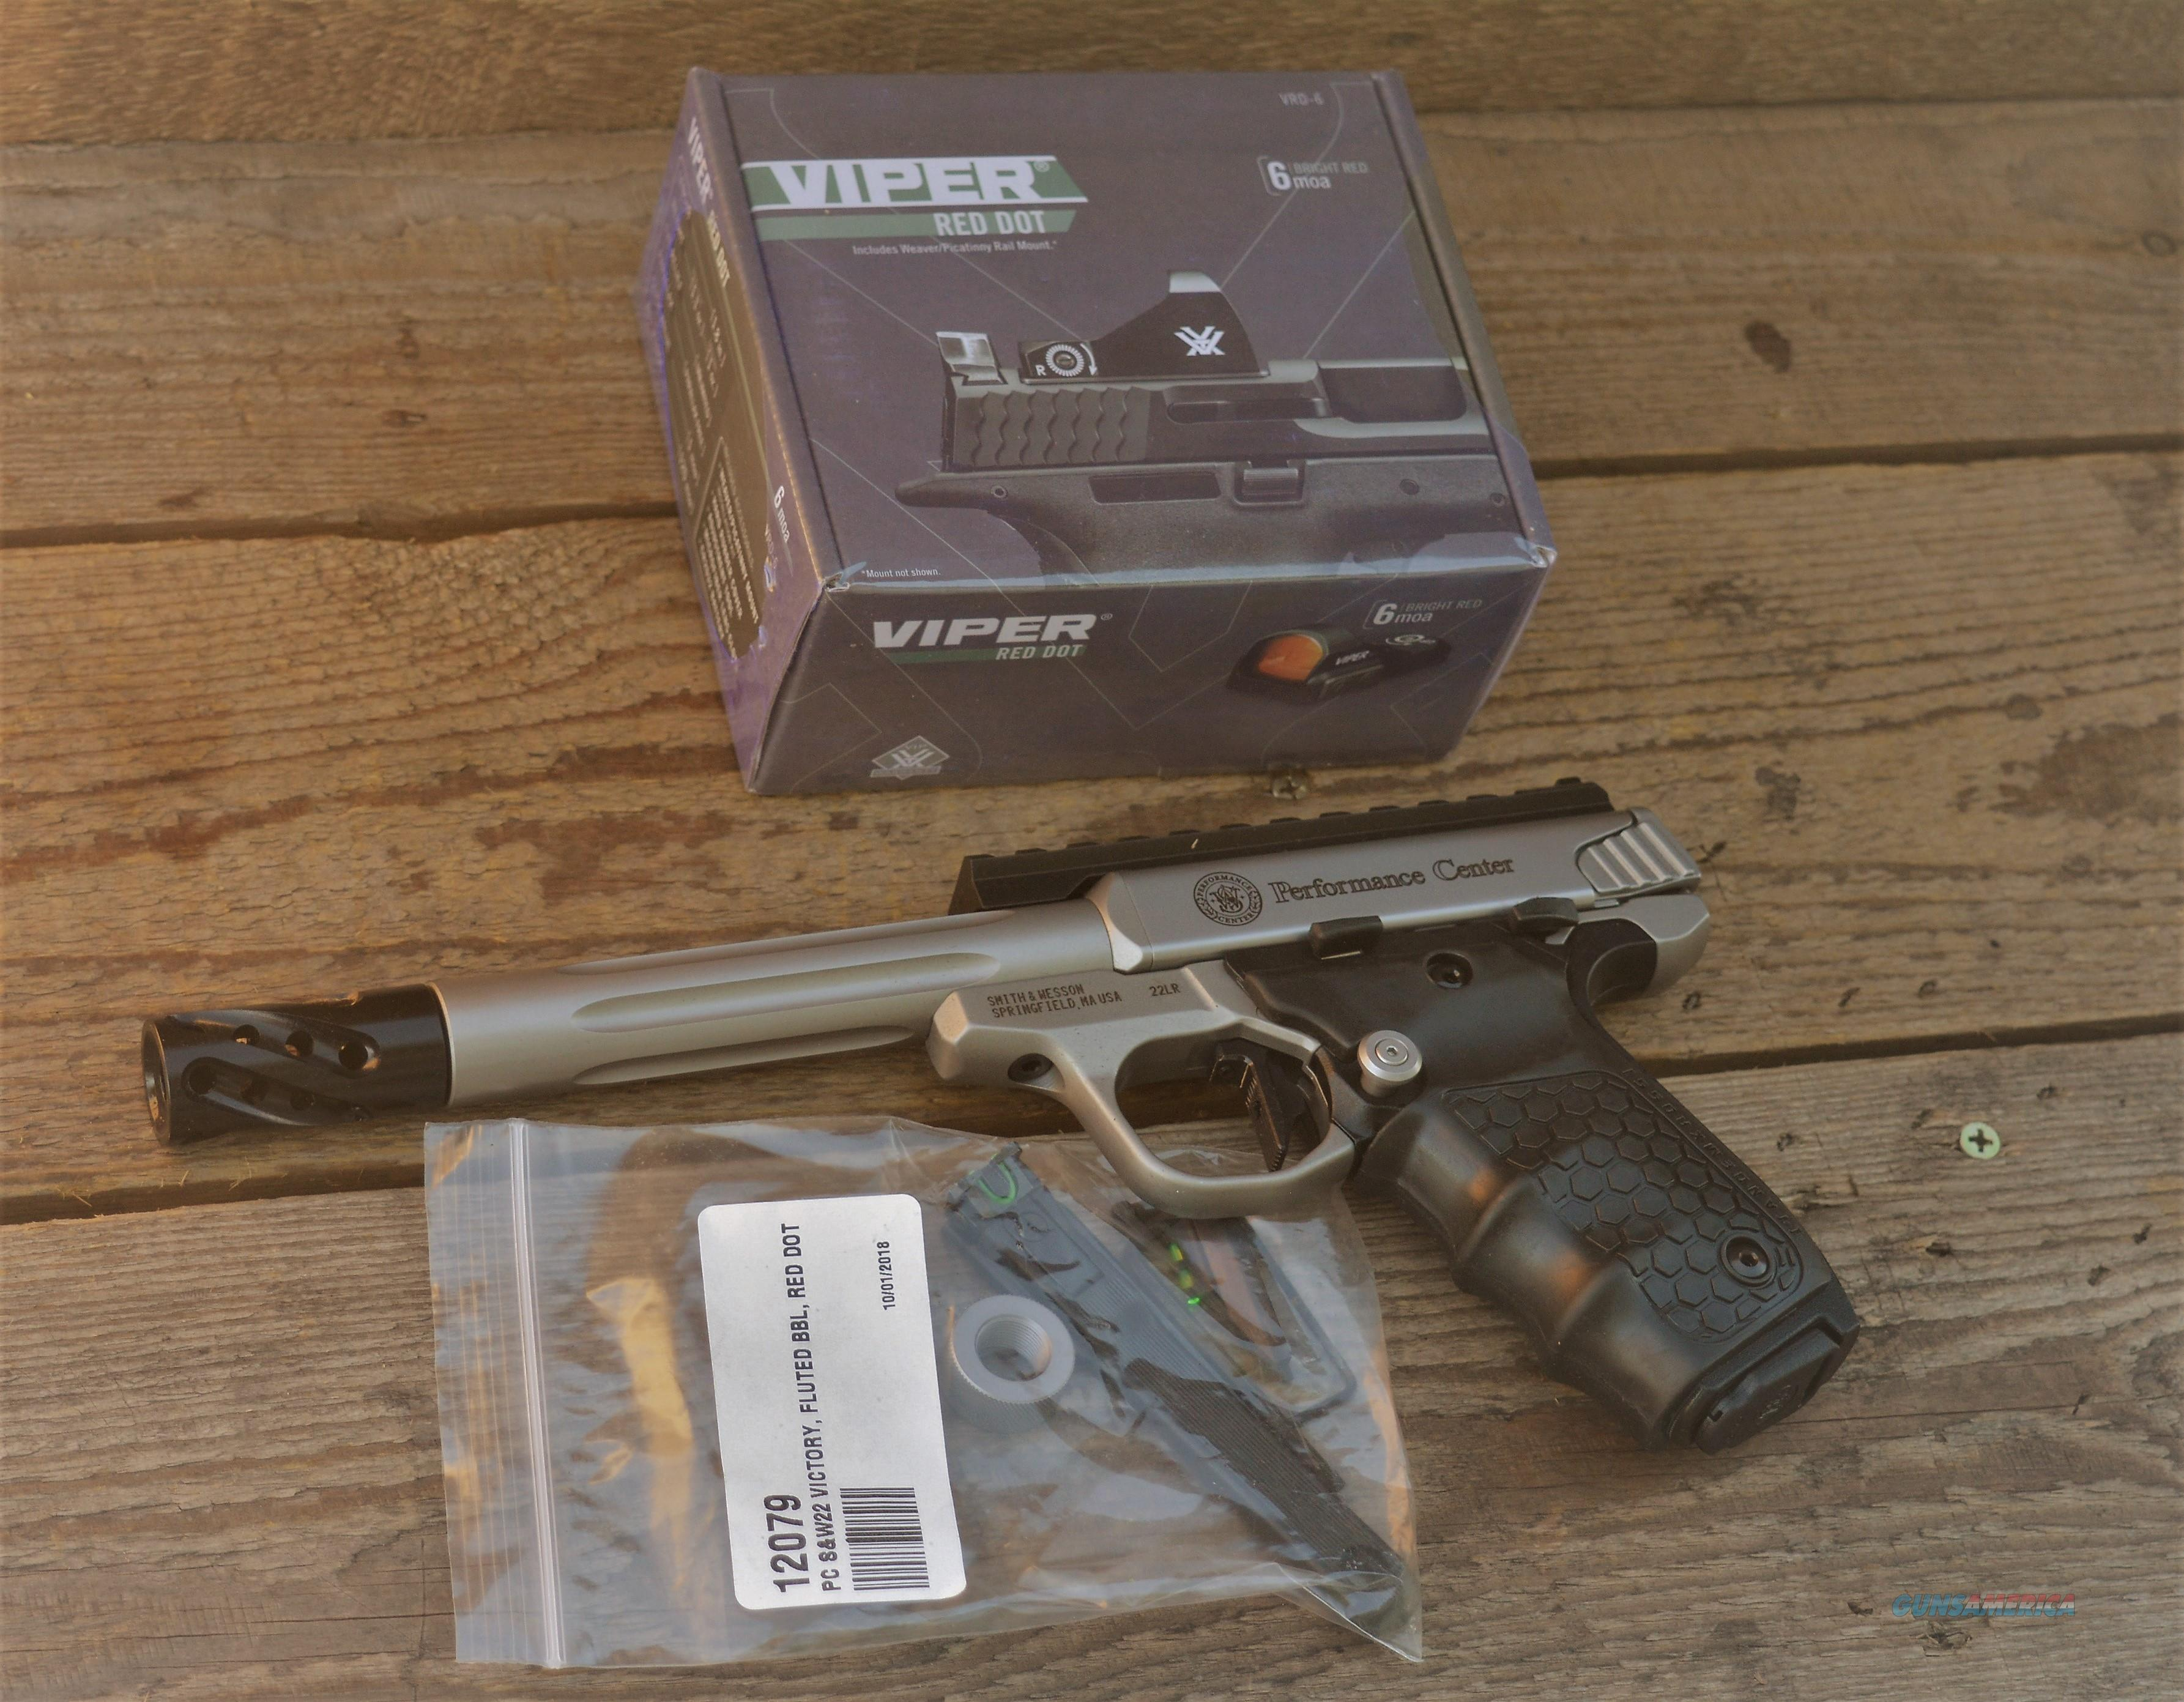 $73 EASY PAY Smith and Wesson PERFORMANCE CENTER Target Pistol OPTIC VORTEX VIPER RED DOT Sight SW22 VICTORY 12079 custom muzzle brake Stainless steel Picatinny rail 22LR Steel reinforced polymer thumb safety 22 LR   Guns > Pistols > Smith & Wesson Pistols - Autos > Steel Frame